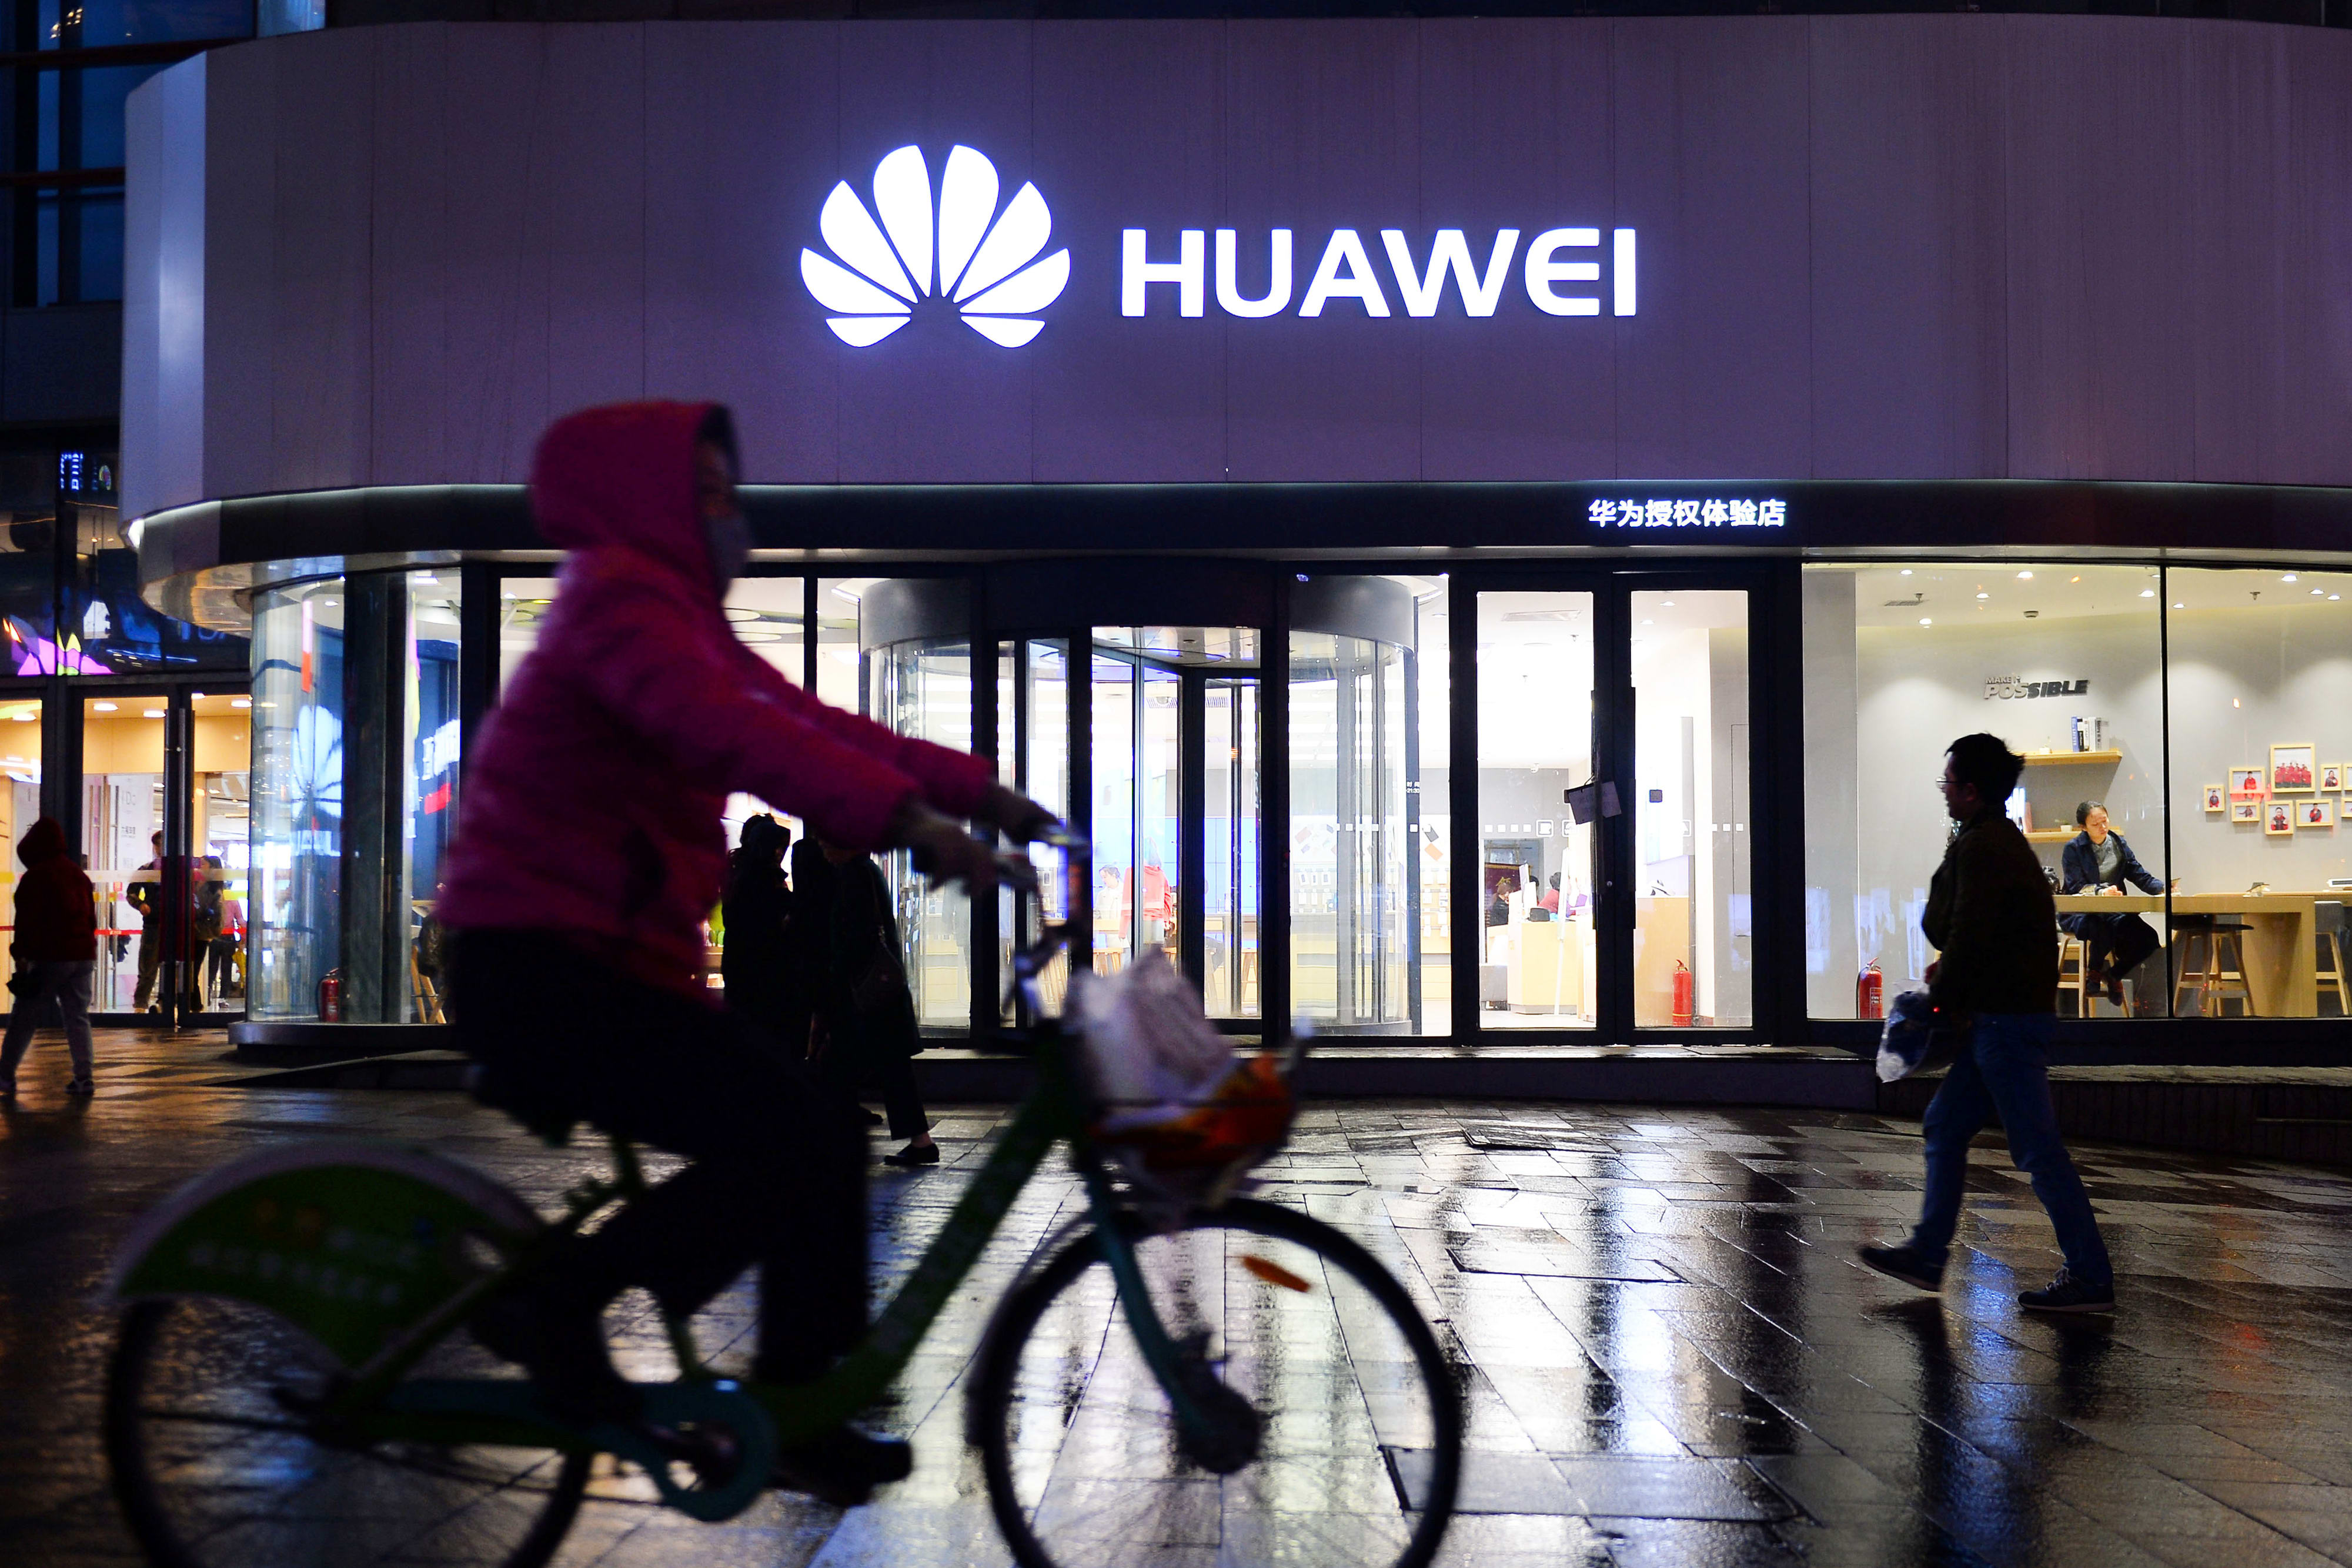 Huawei accuses the US government of disrupting its business